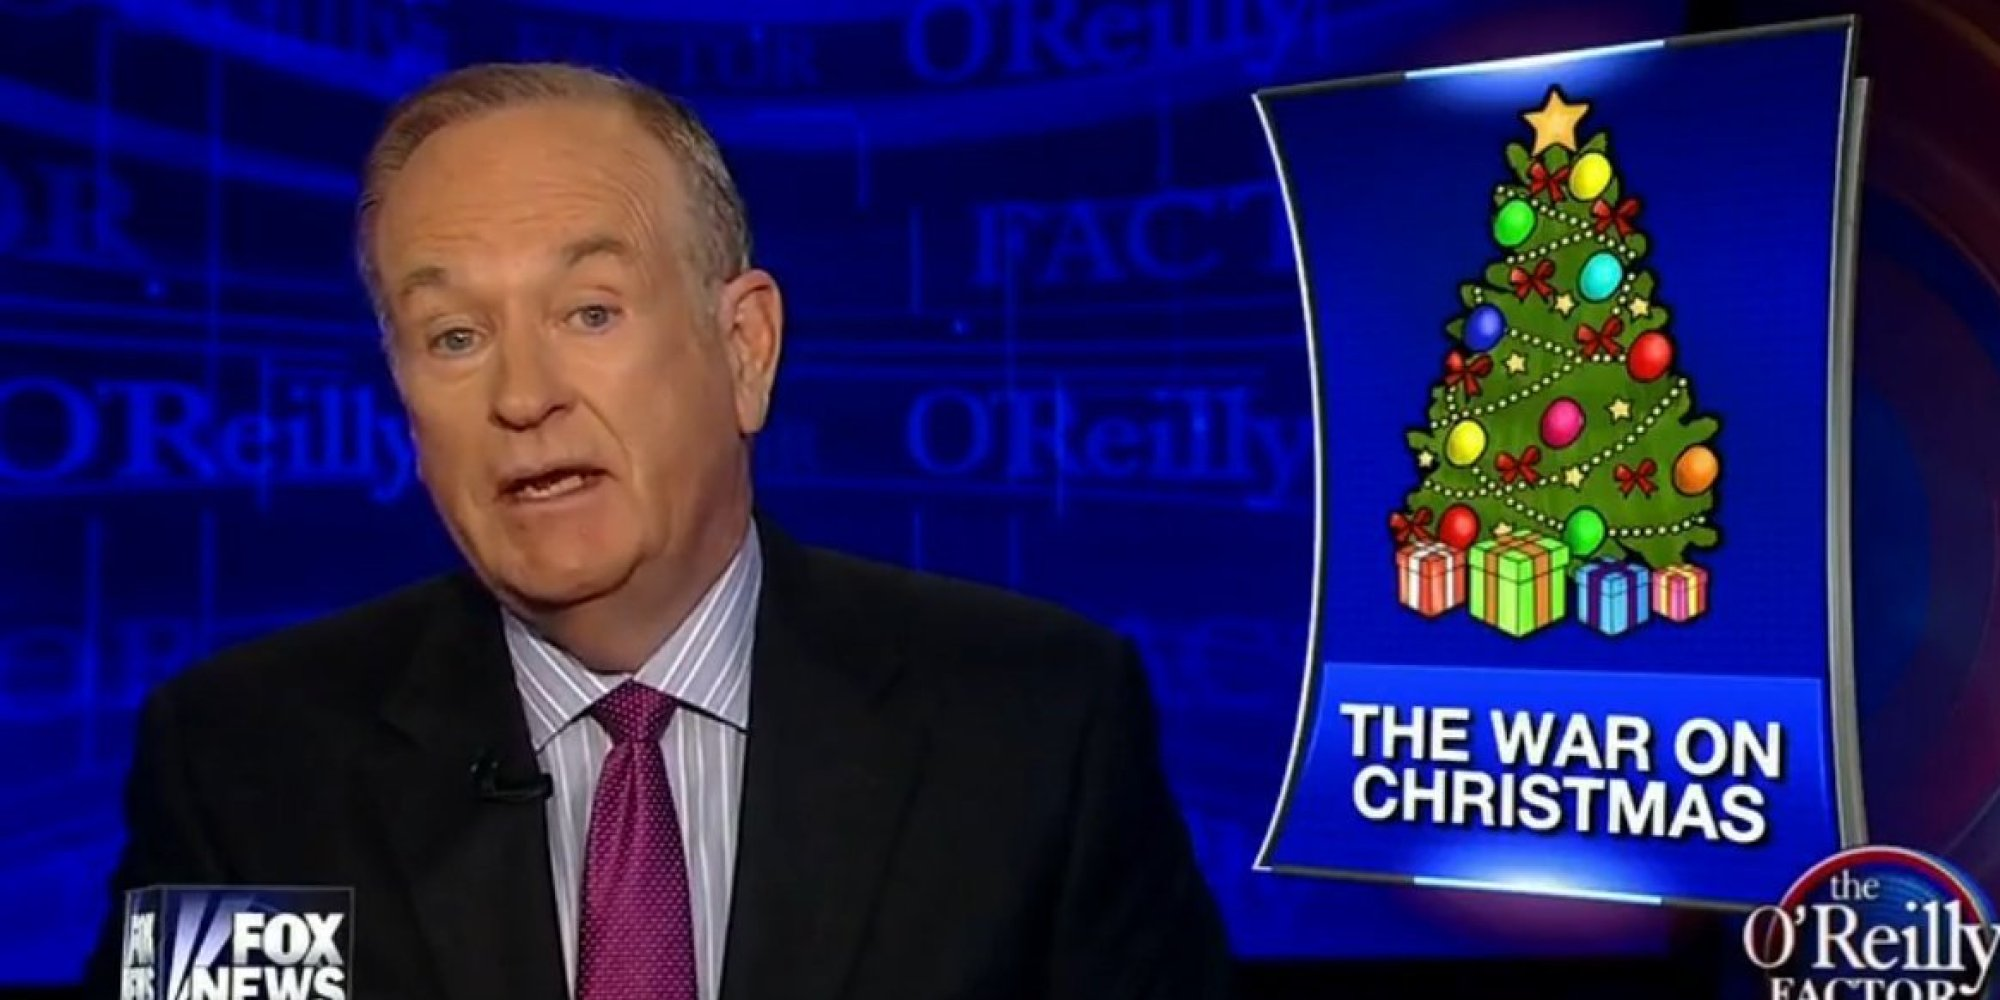 Bill O'Reilly Launches First Counter-Offensive In The 'War On ...